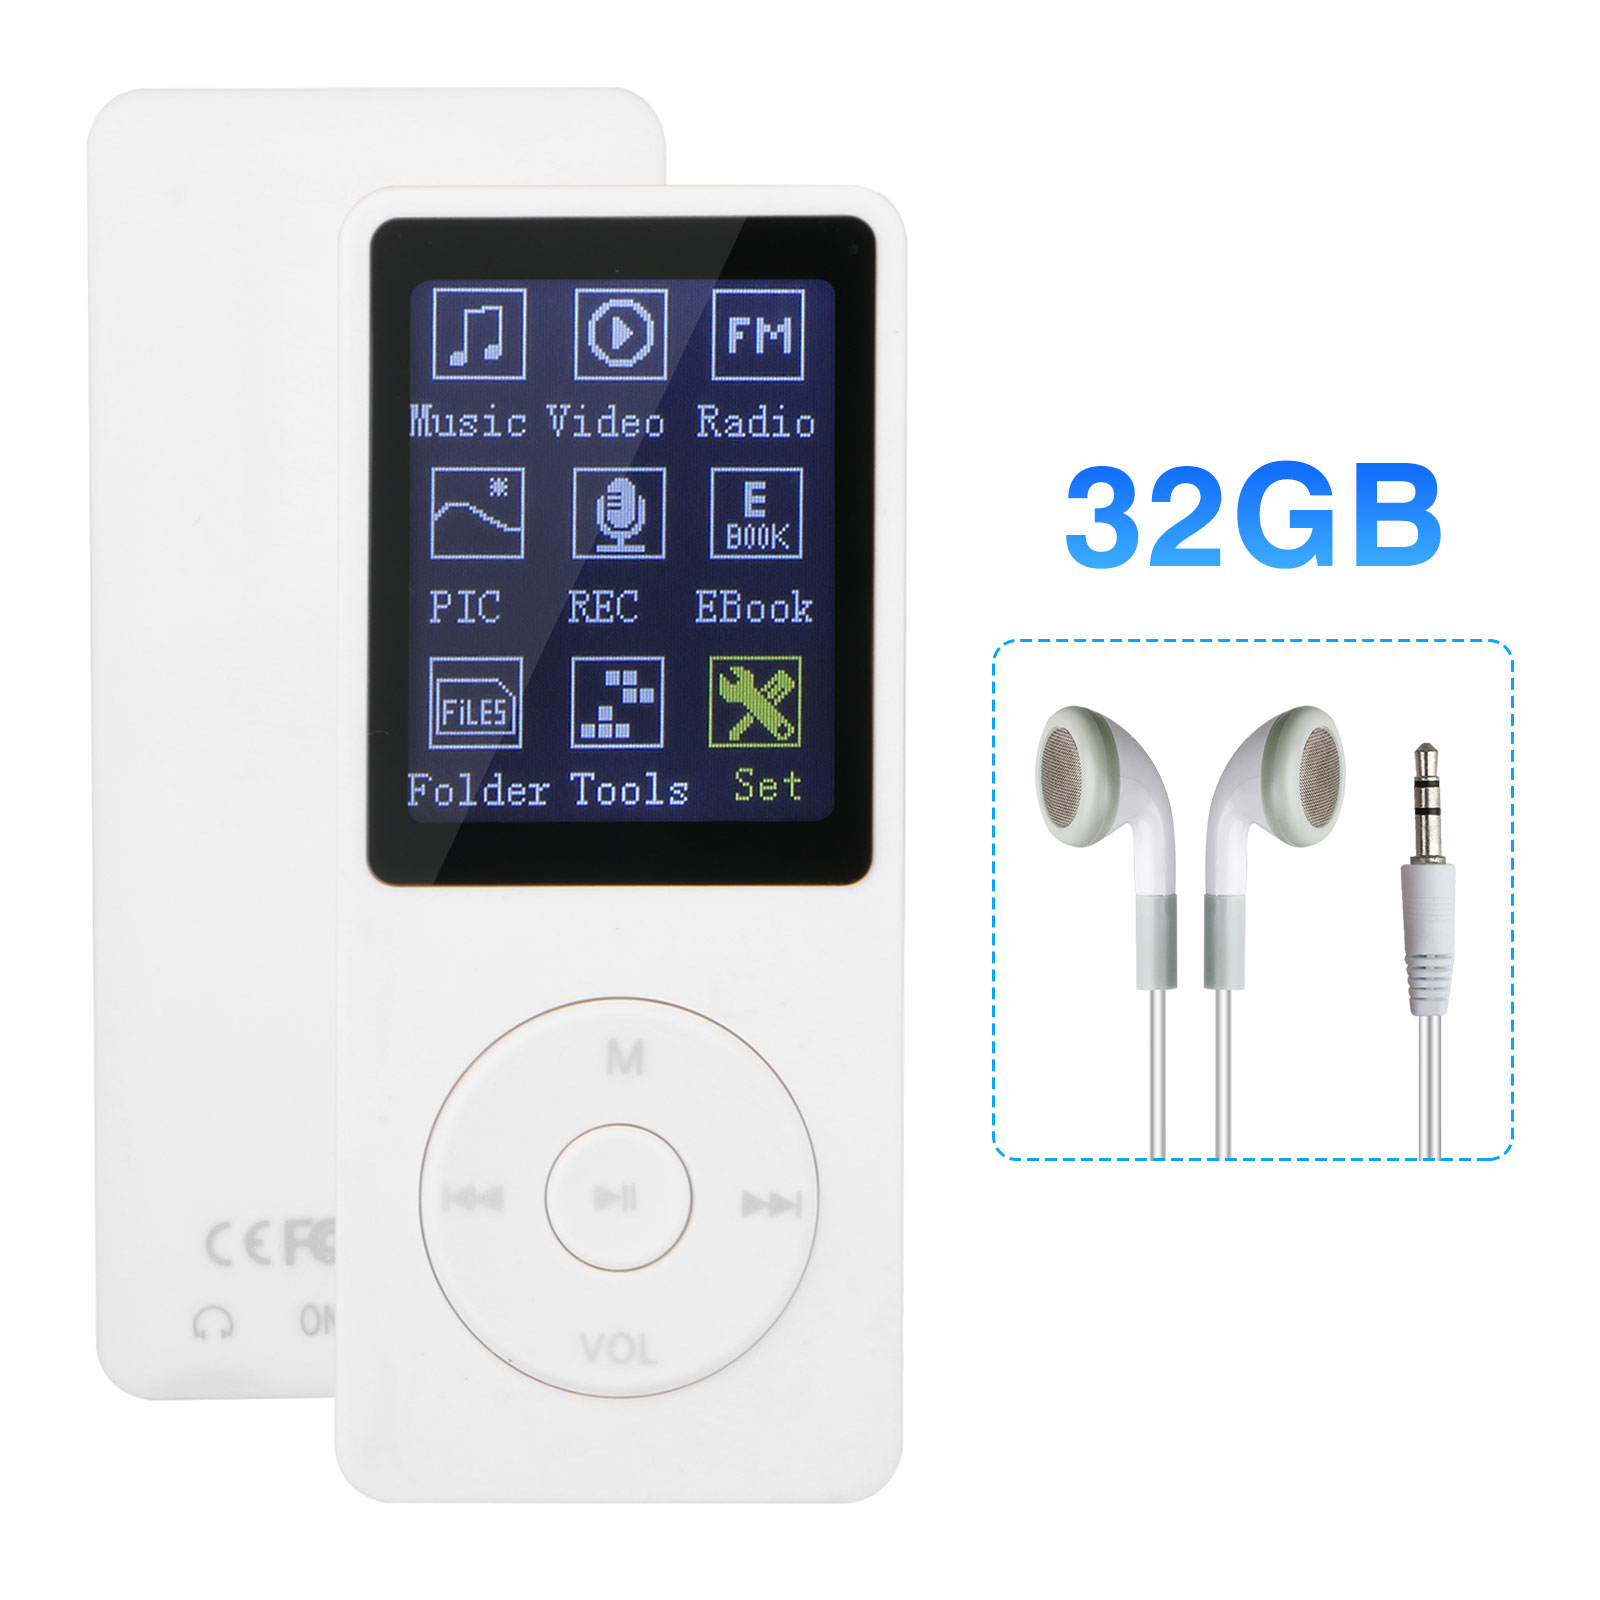 TSV MP3 MP4 Player, Support UP to 32GB TF Card, Portable Digital Music Player, Rechargeable Battery, Ultra Slim Large LCD Screen